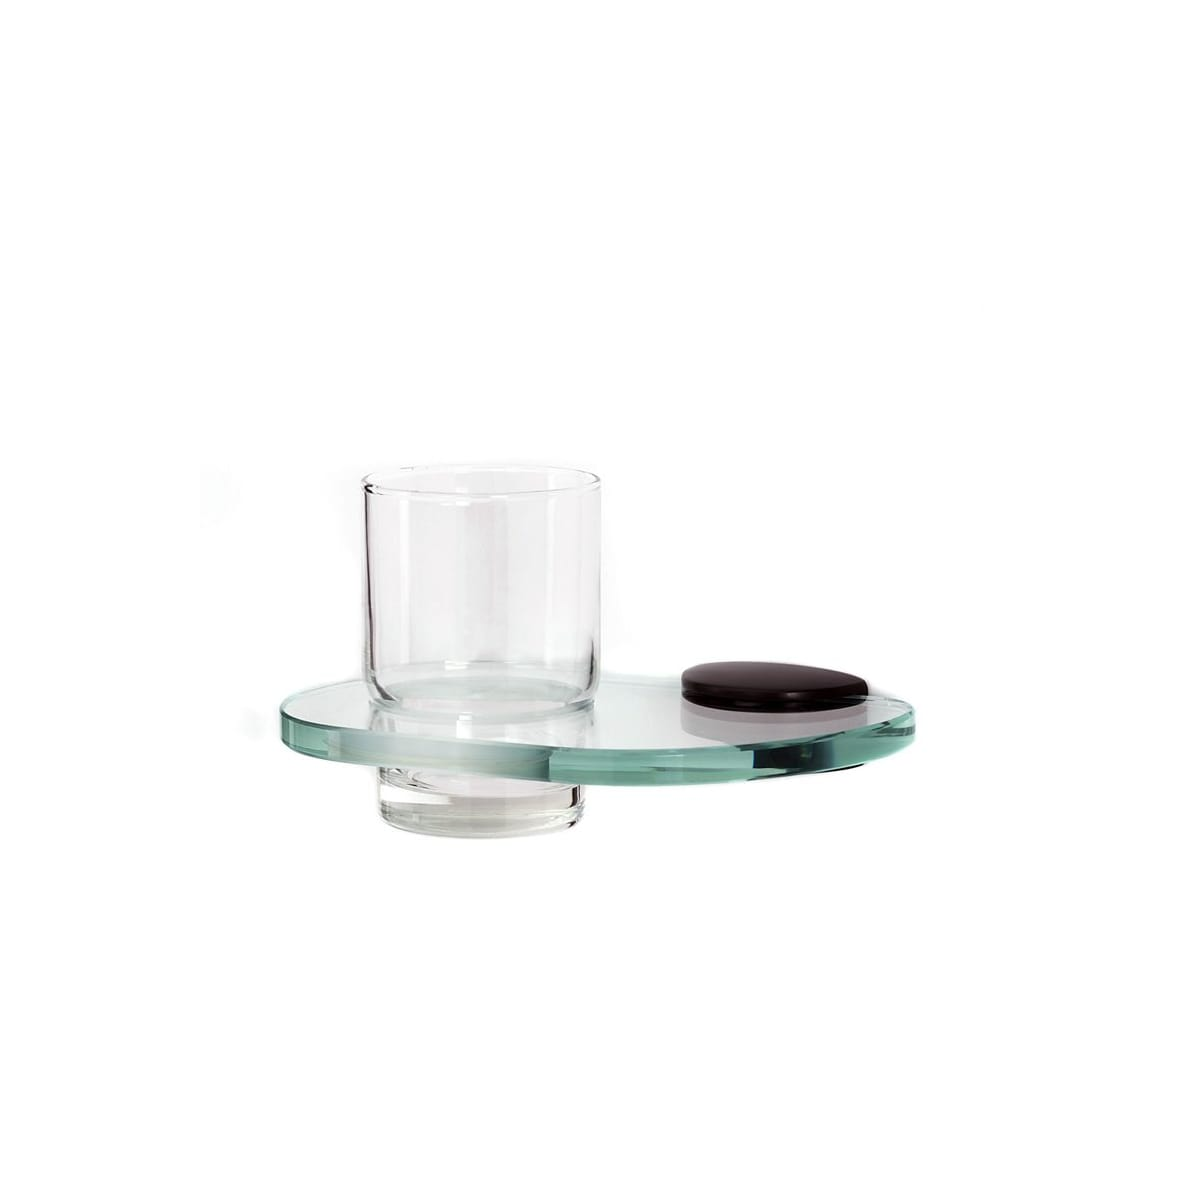 Alno Euro Series Wall Mounted Glass Tumbler with Brass Mounting Bracket and Glass Shelf